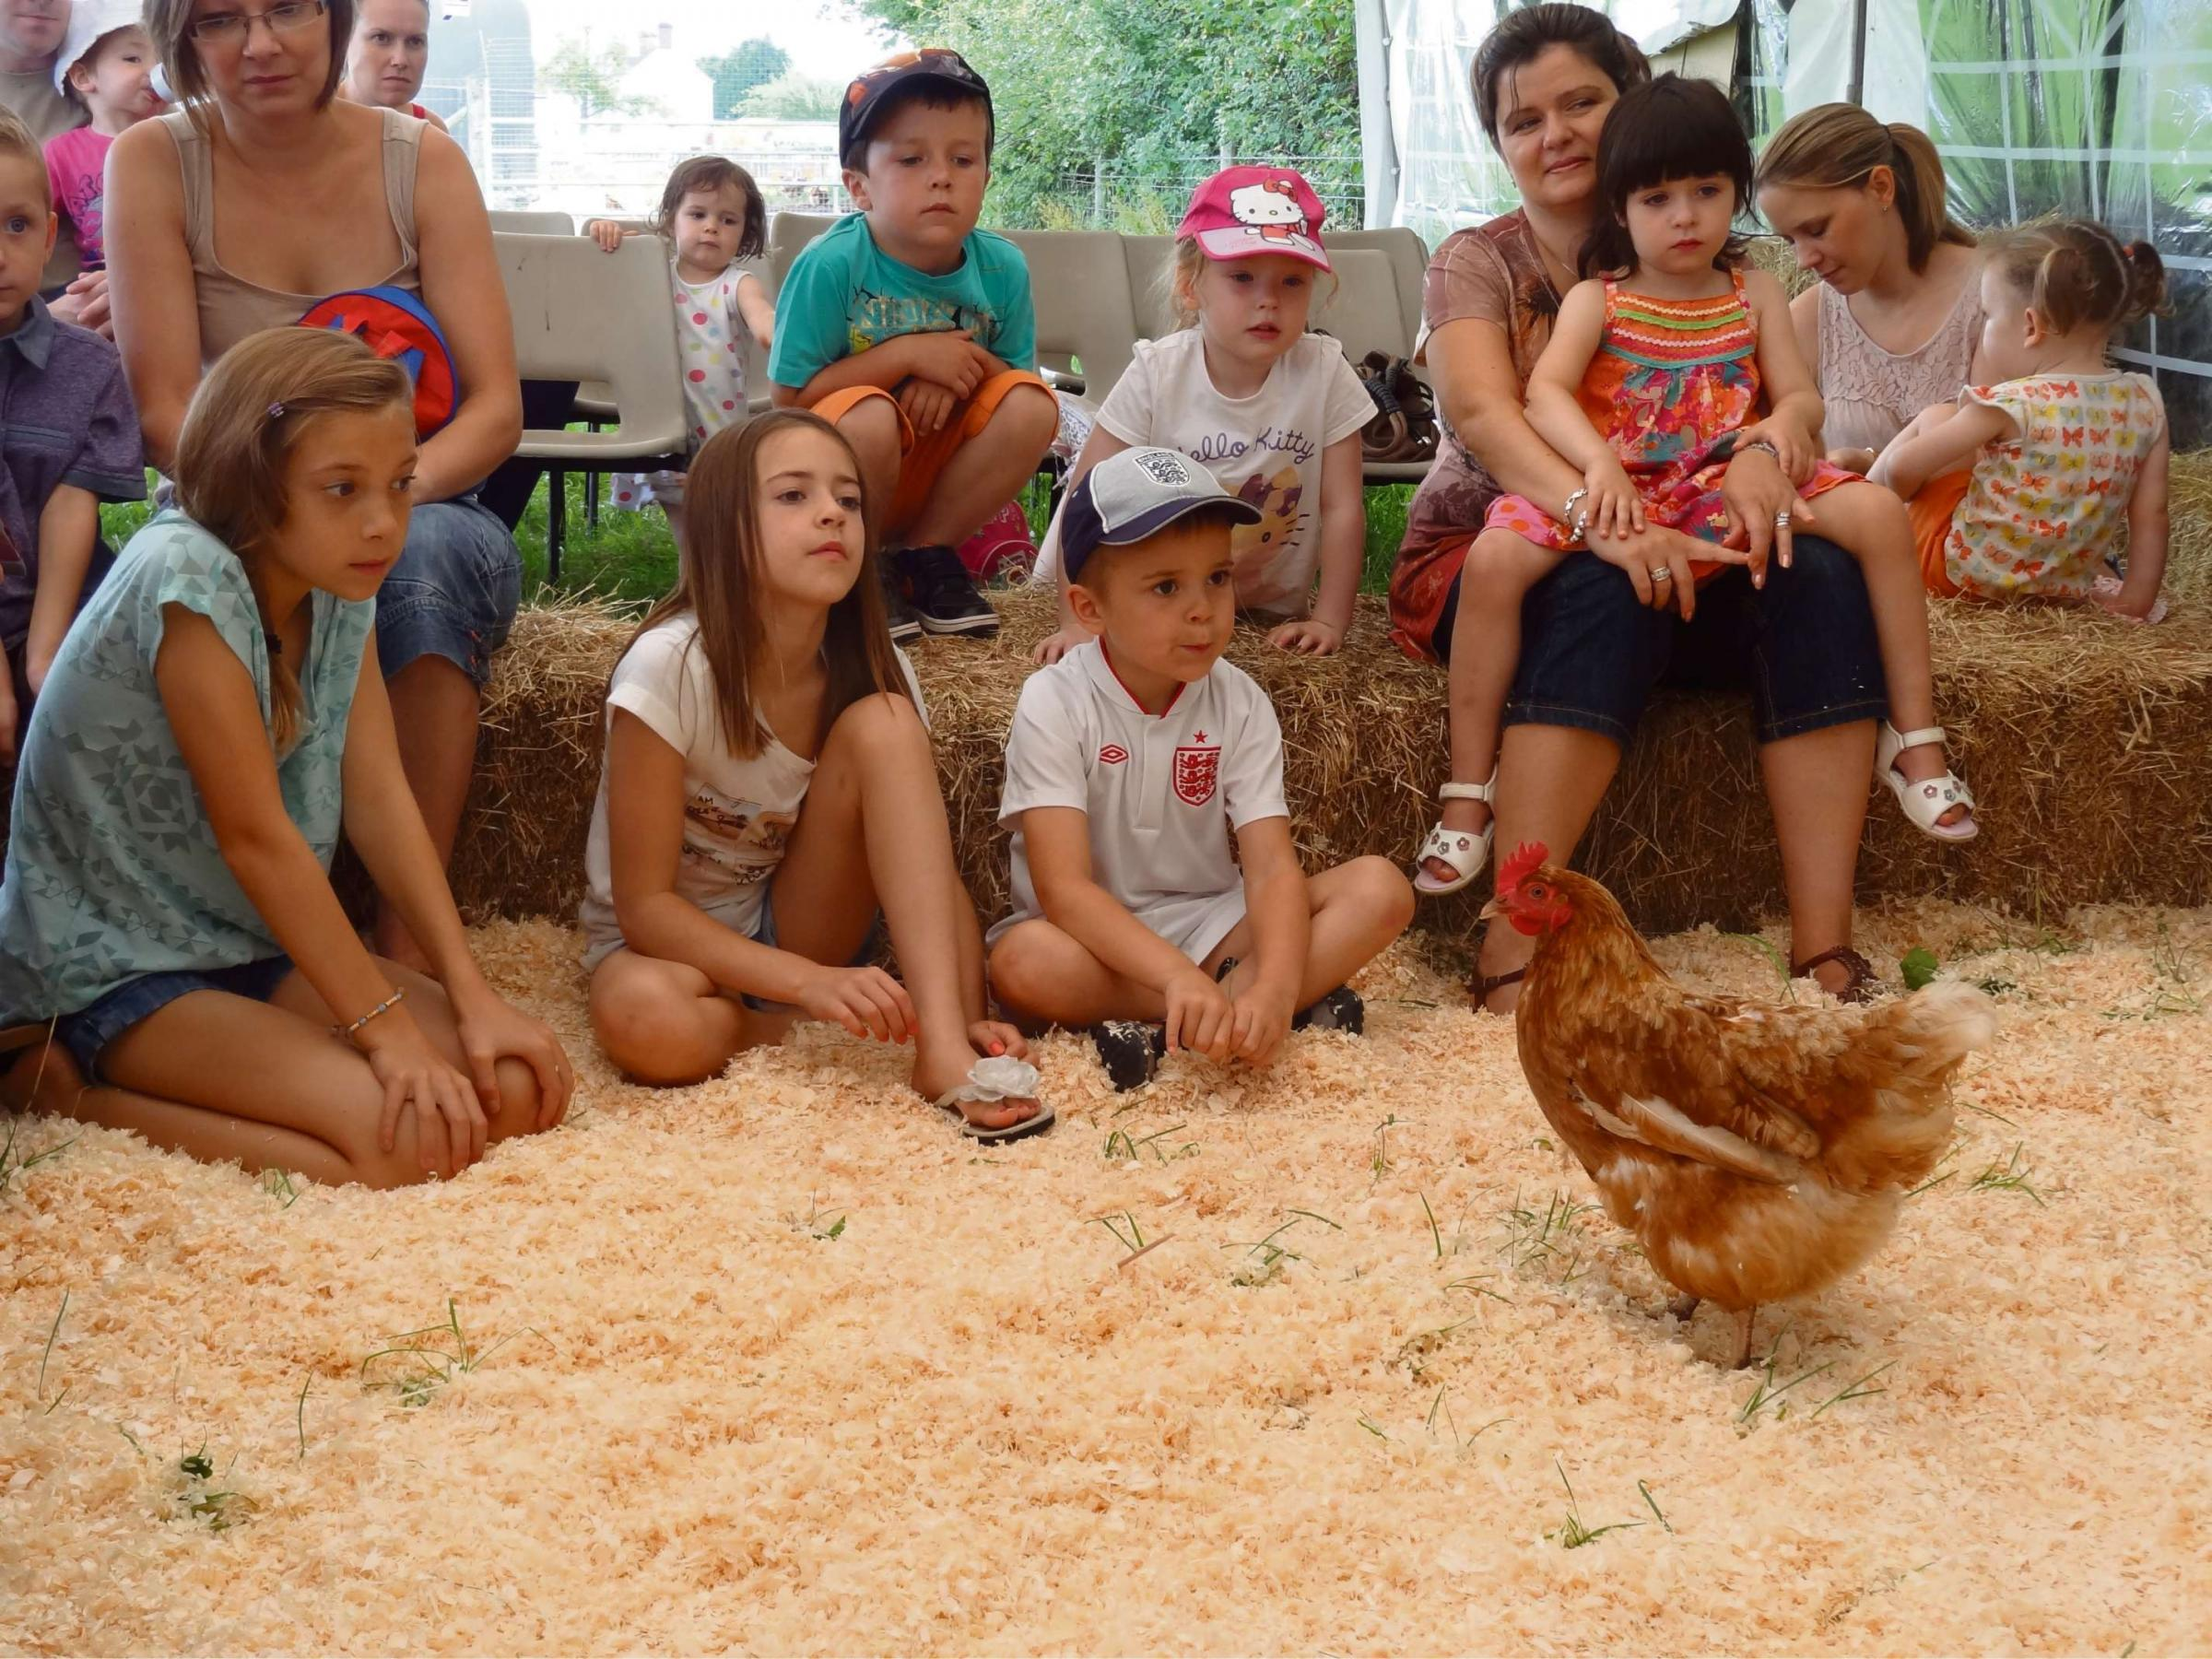 Visitors get friendly with the chickens at Stables Farm in Astwood Bank.